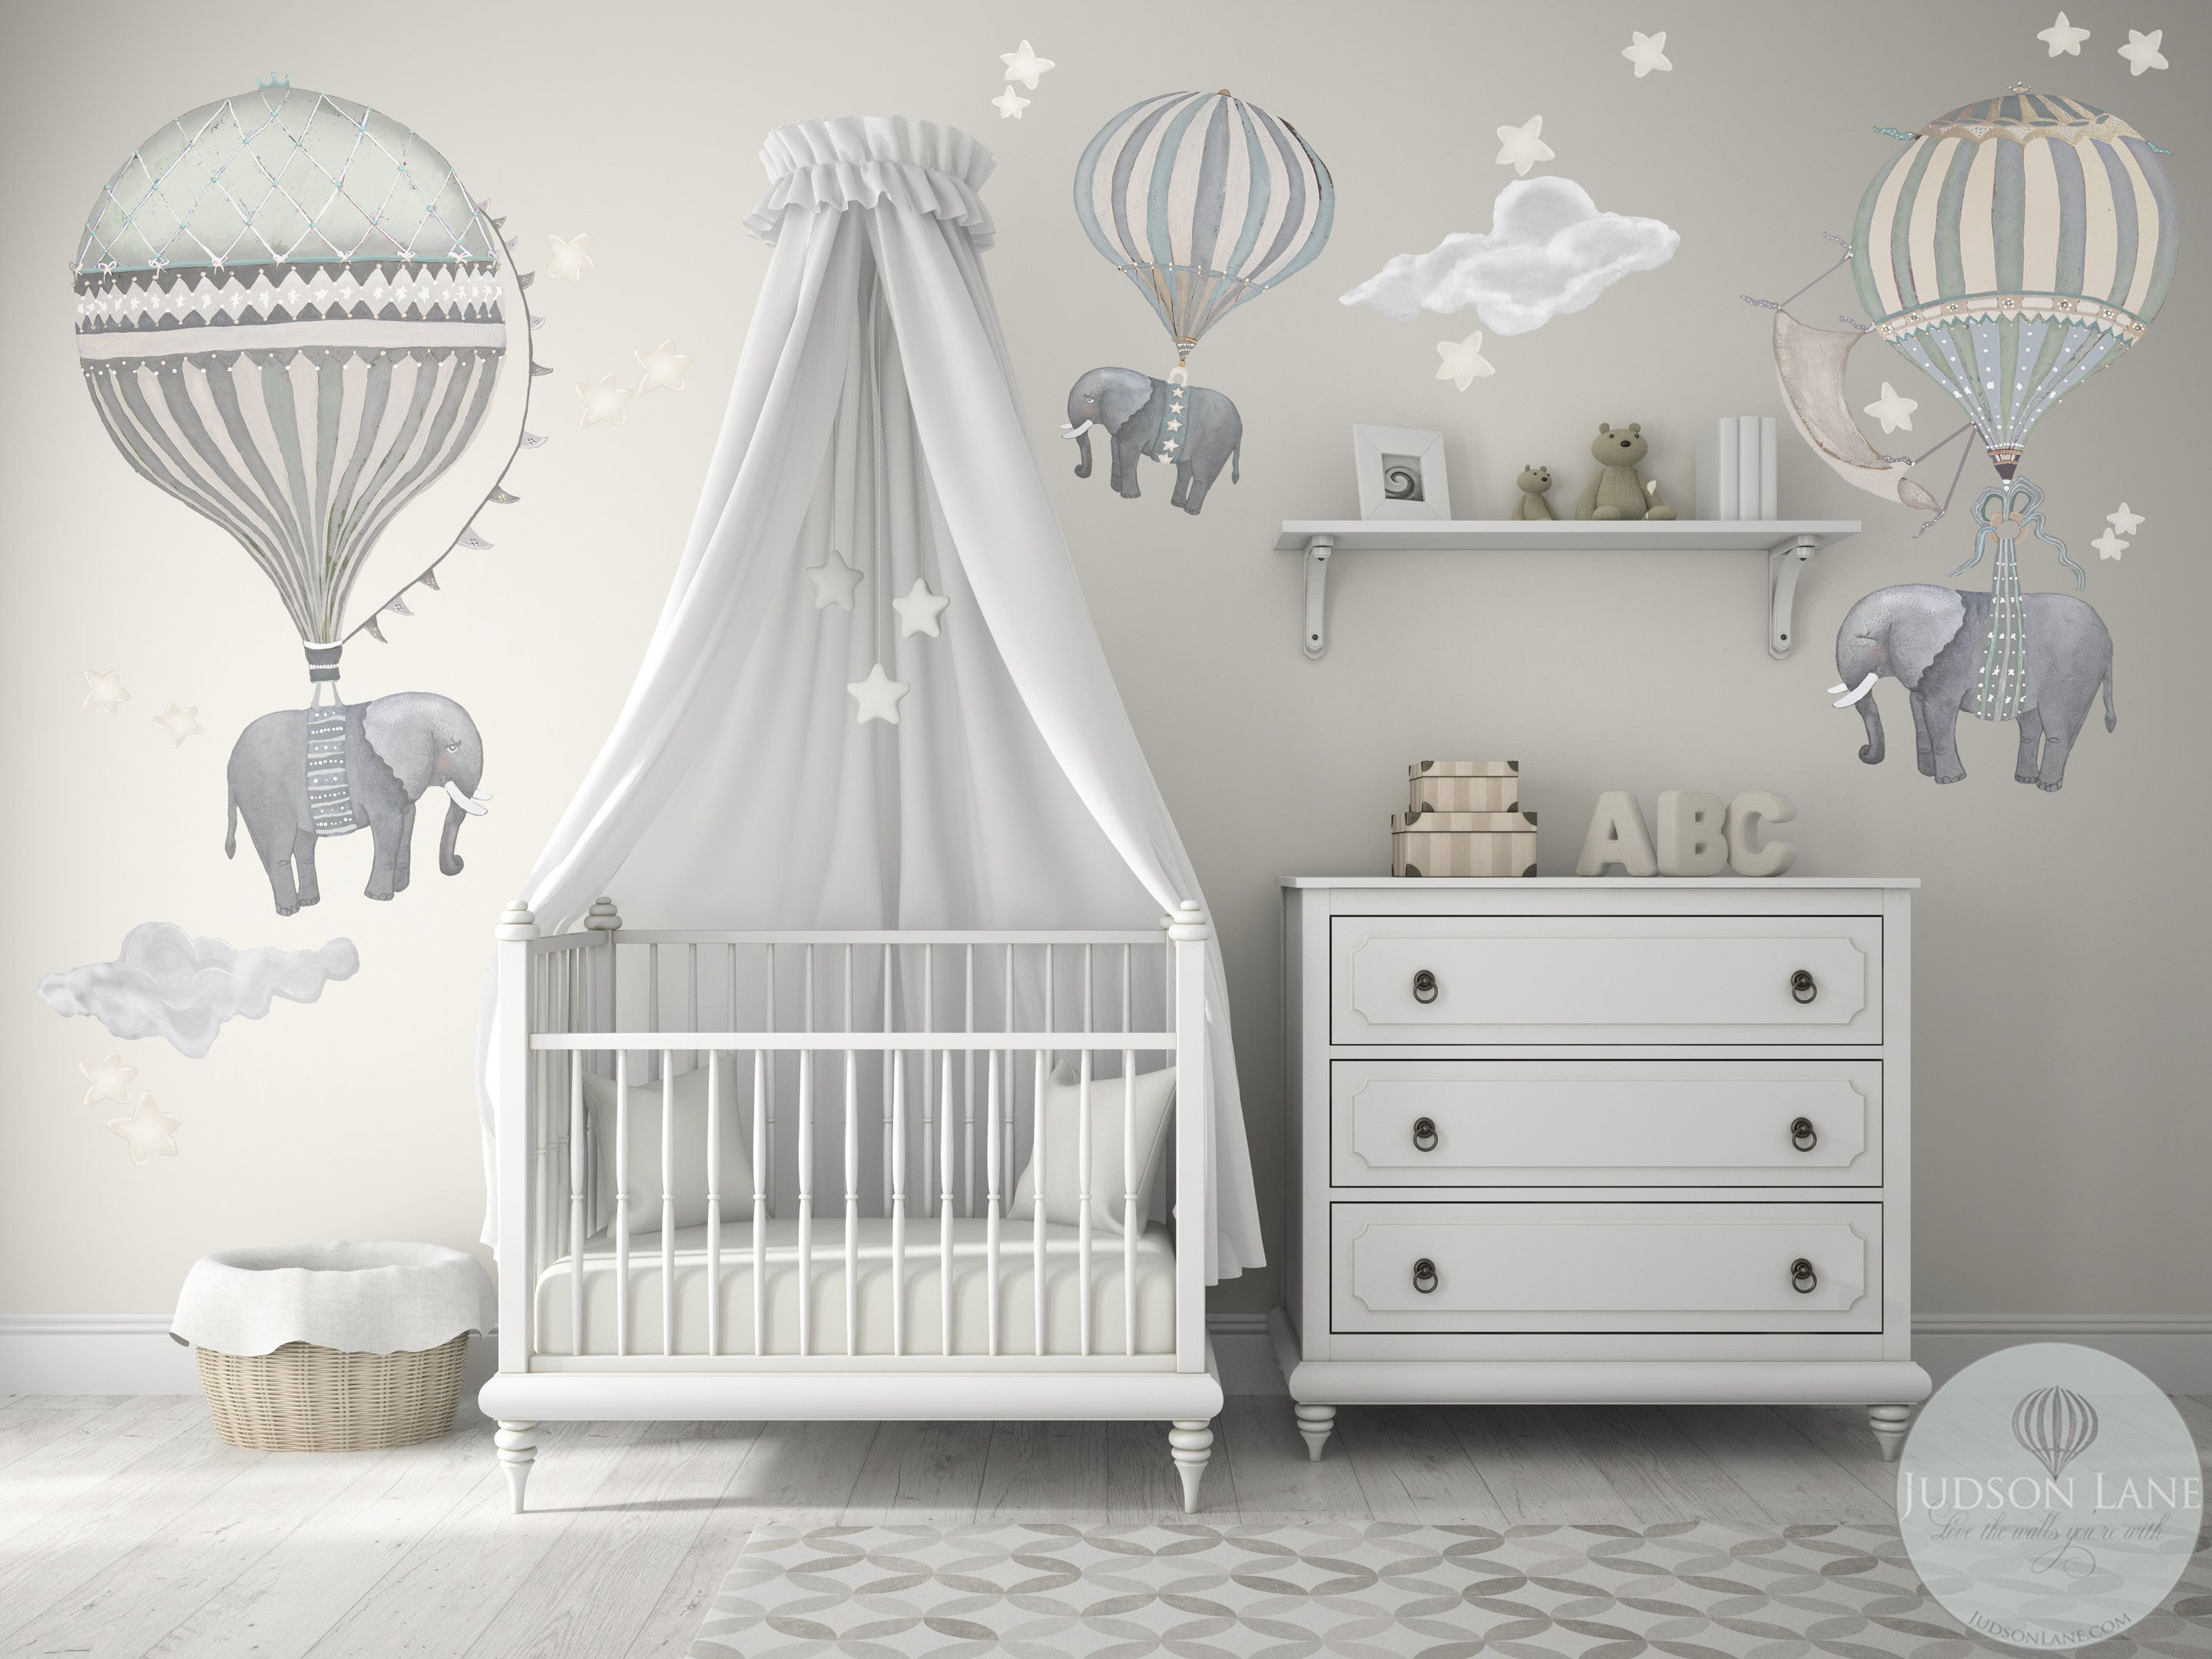 New Set Of Xl 3 Elephants With Hot Air Balloons Neutral 2